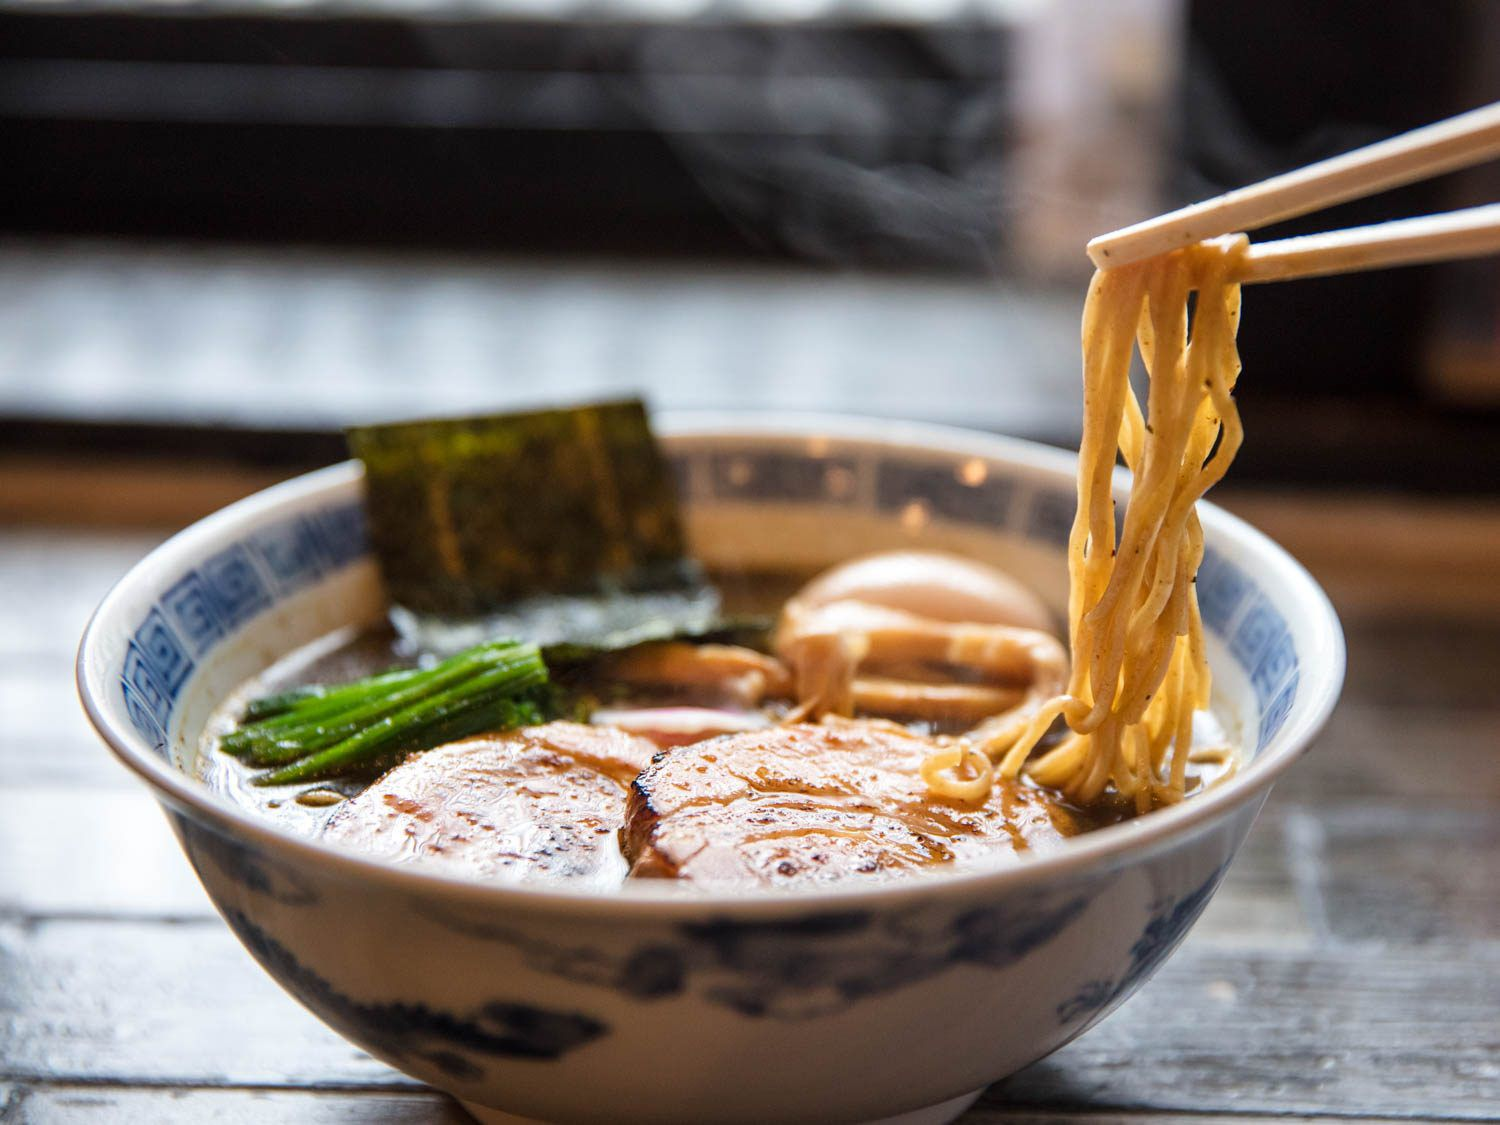 Chopsticks lifting noodles from a bowl of ramen, with nori, green vegetables, pork belly, and egg visible in the background